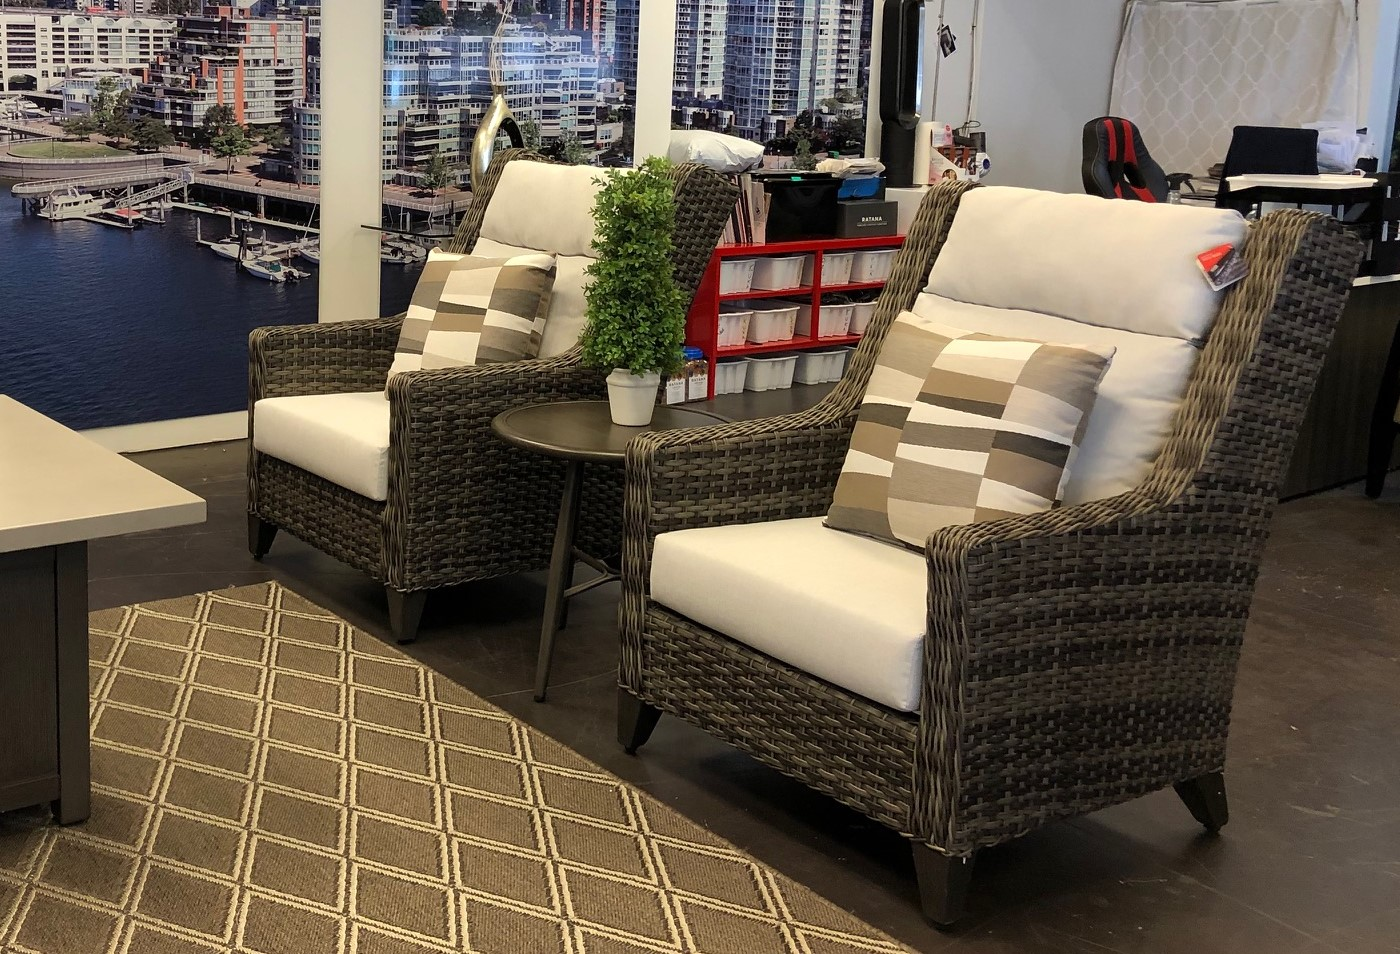 Wicker Chairs Bc S 1 Patio Selection Vancouver Sofa And Patio